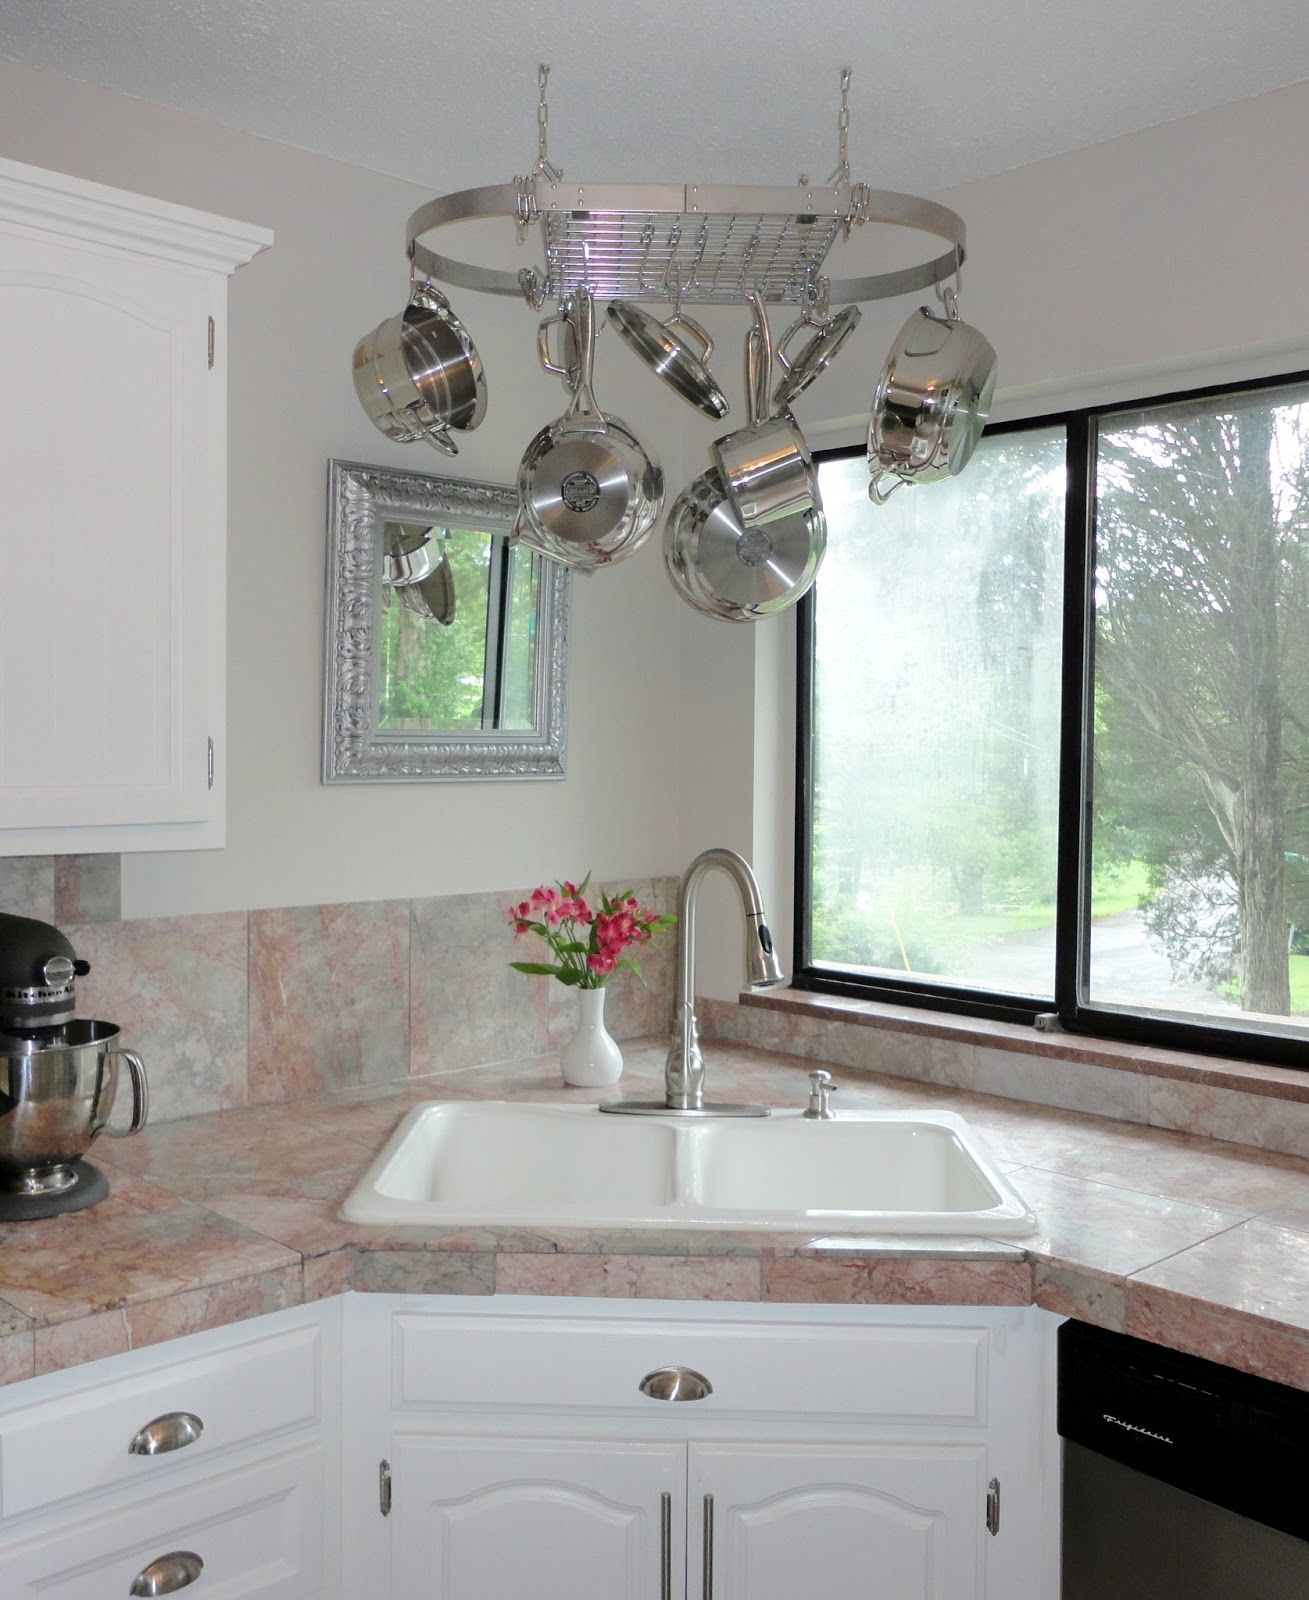 Kitchen Oval Hanging Cookware Rack And White Kitchen Sink With Entrancing Corner Kitchen Sink Design Ideas Review